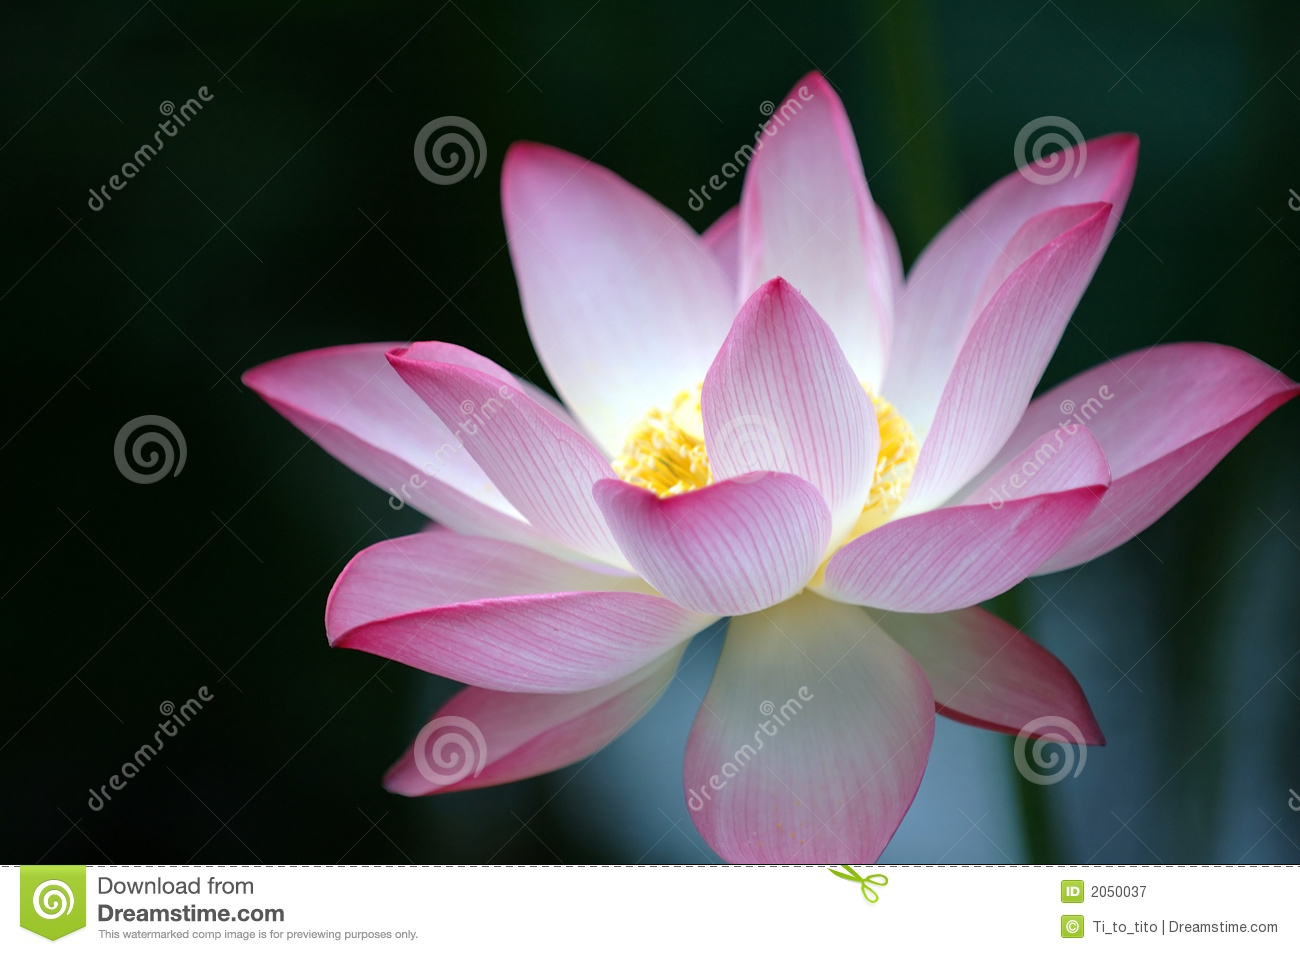 lotus flower over dark background royalty free stock photography, Beautiful flower